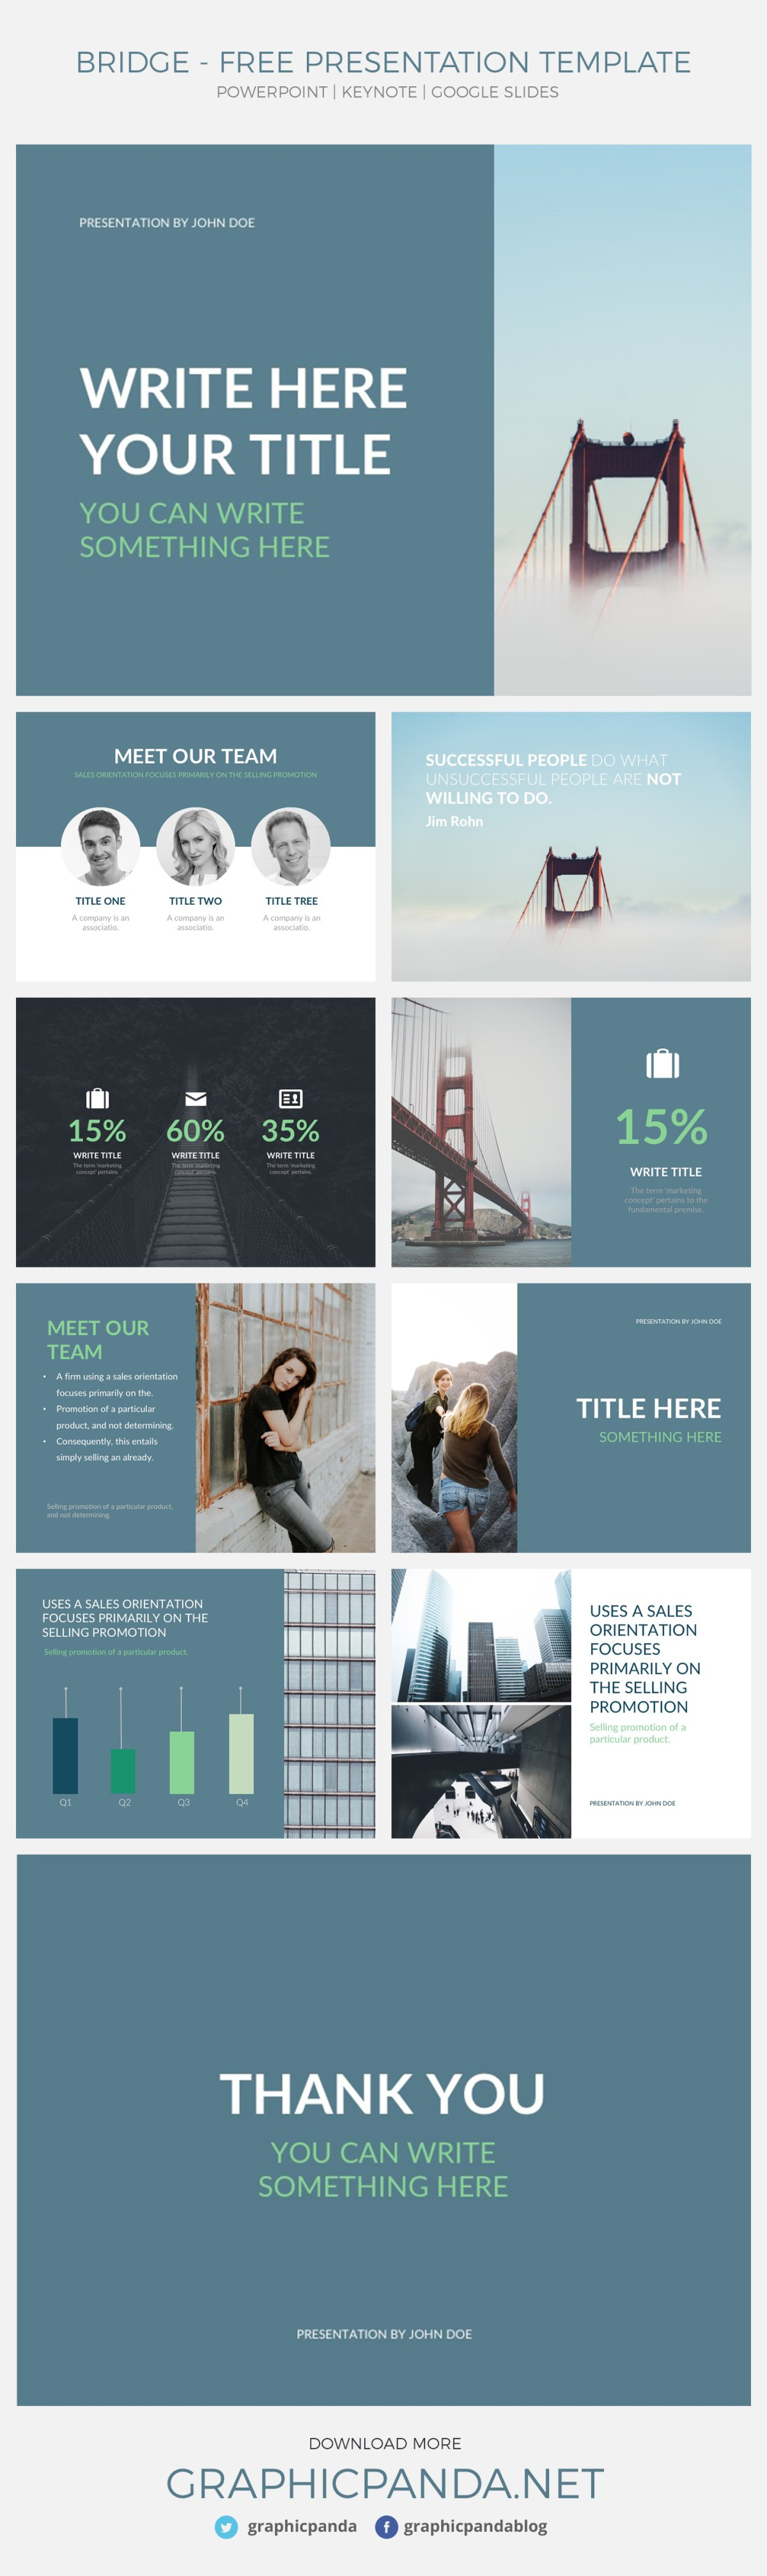 Bridge Presentation Template Powerpoint Keynote Google Slides